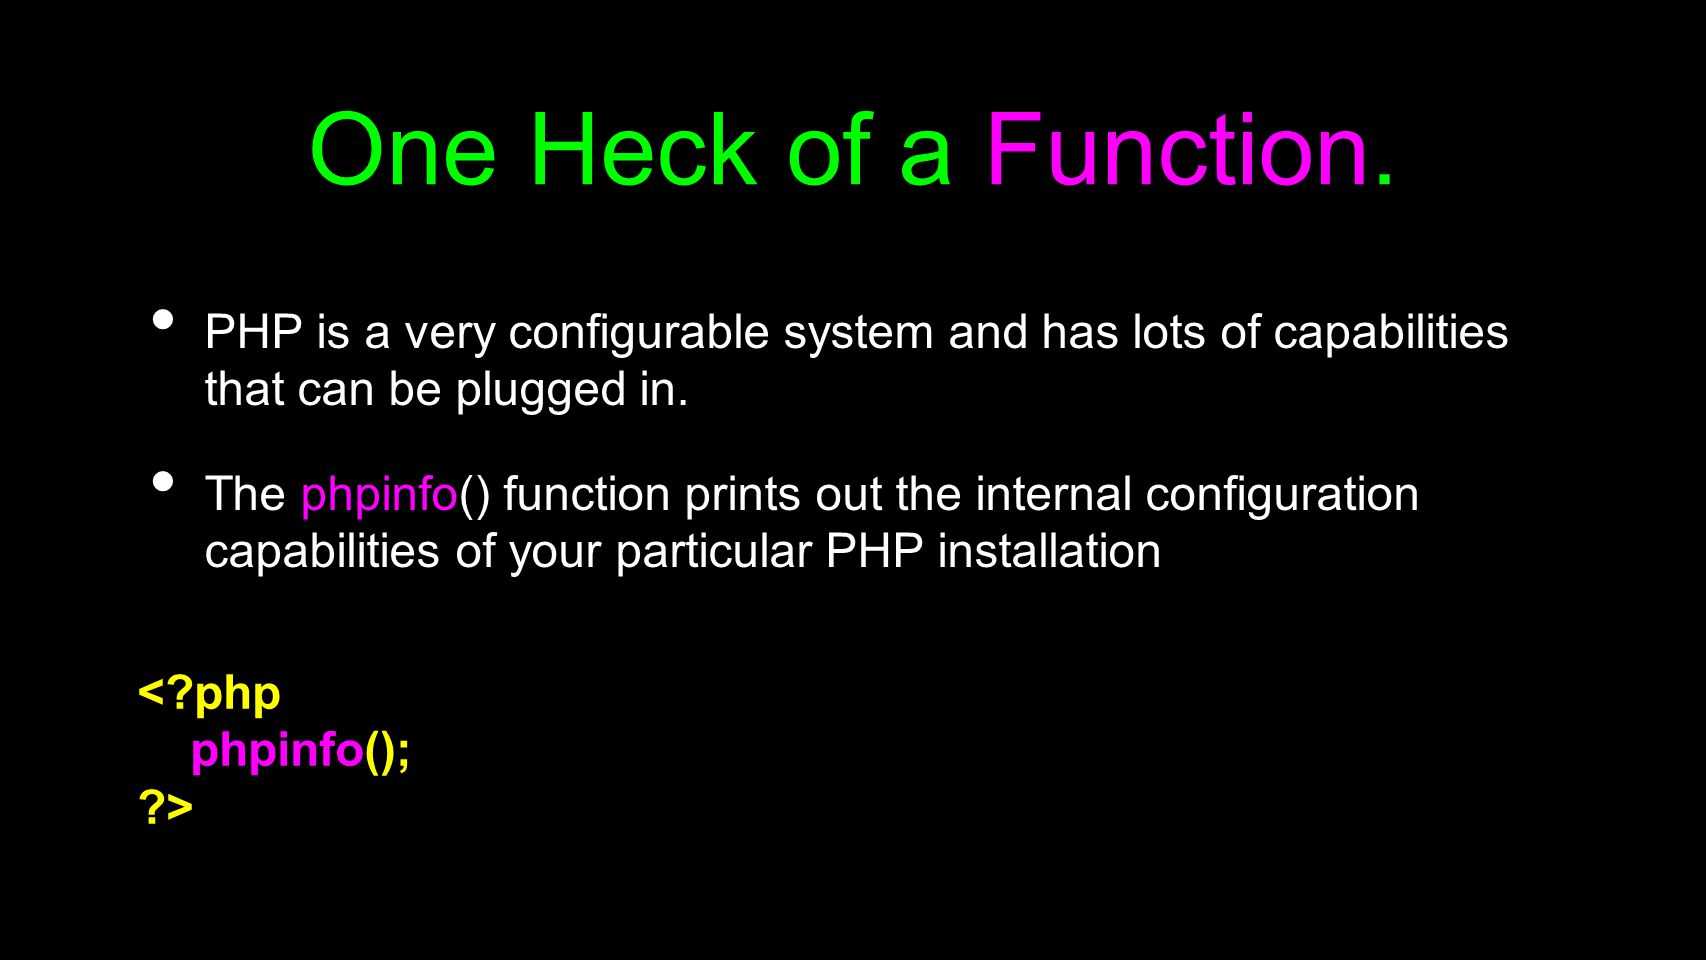 One Heck of a Function. PHP is a very configurable system and has lots of capabilities that can be plugged in. The phpinfo() function prints out the i